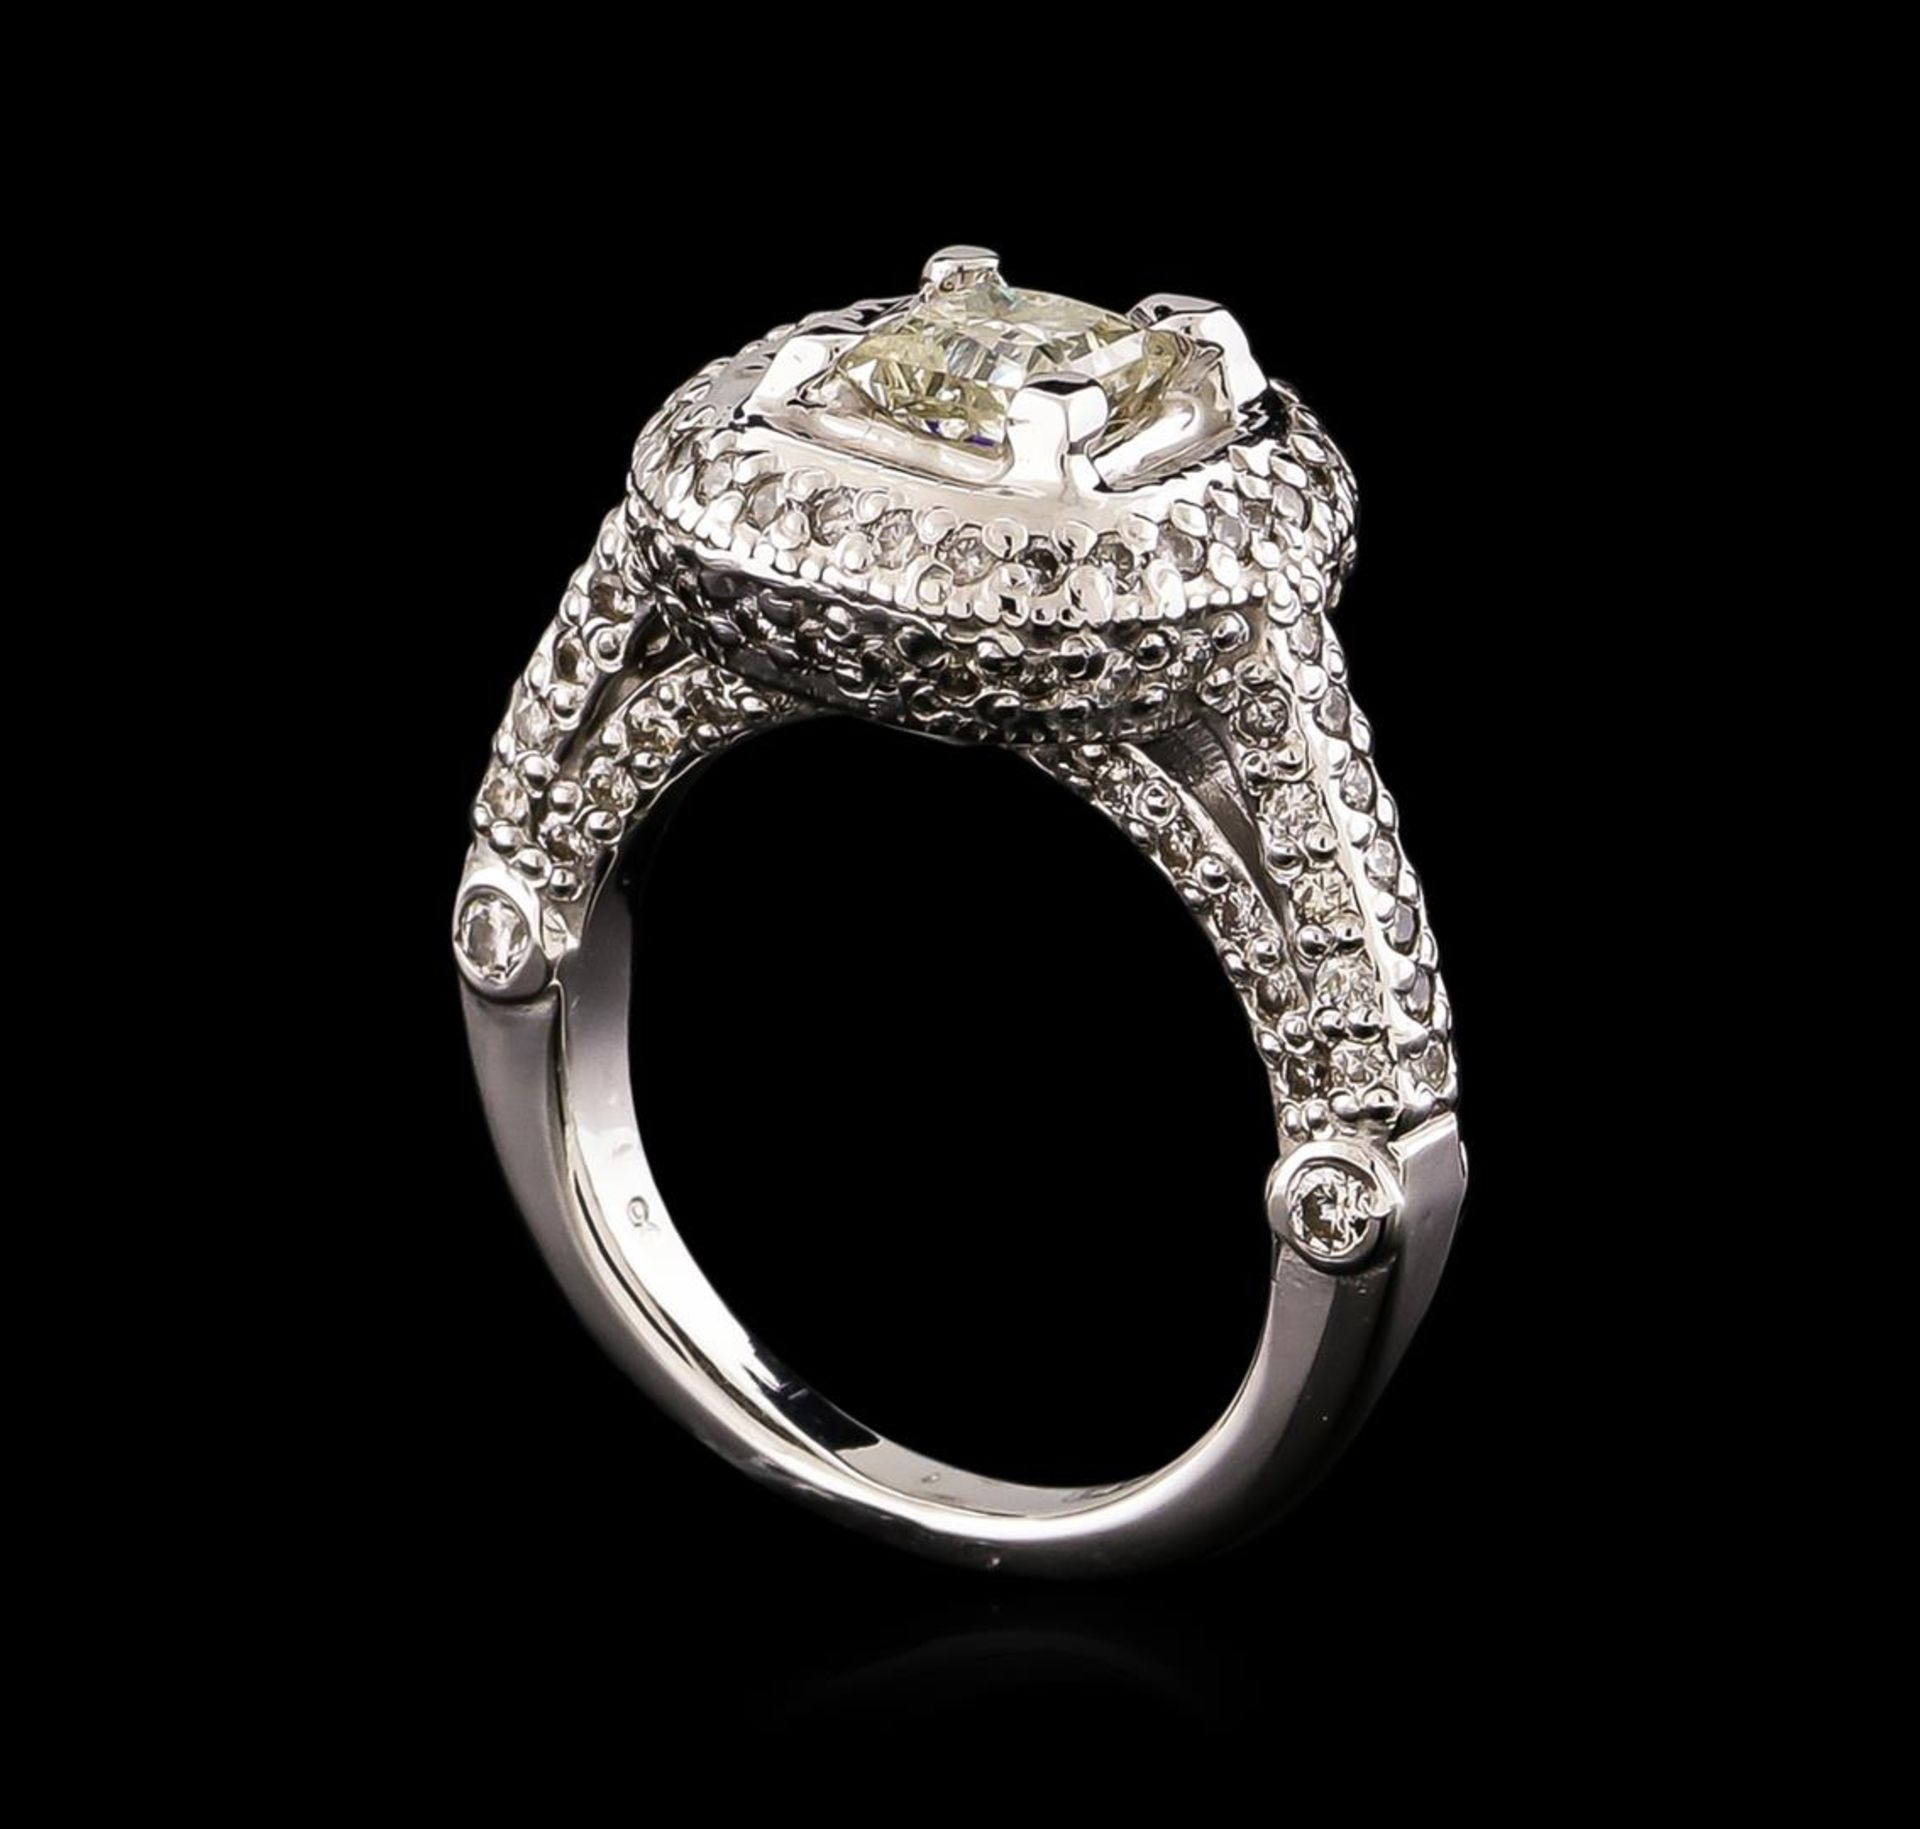 14KT White Gold 1.78 ctw Diamond Ring - Image 4 of 5